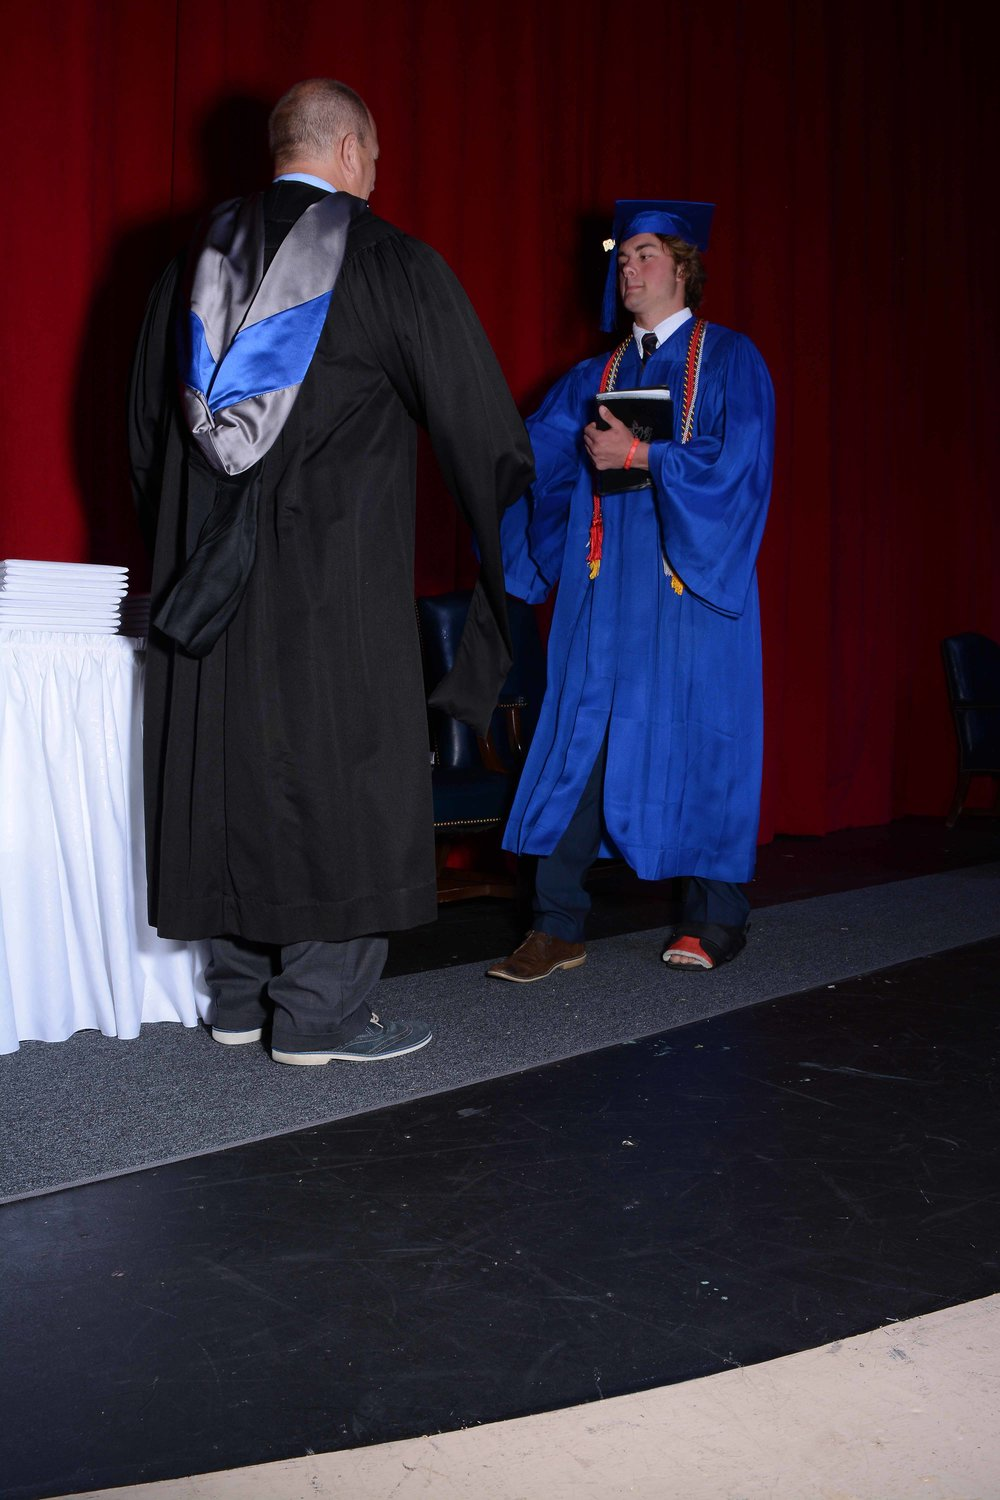 May14 Commencement19.jpg